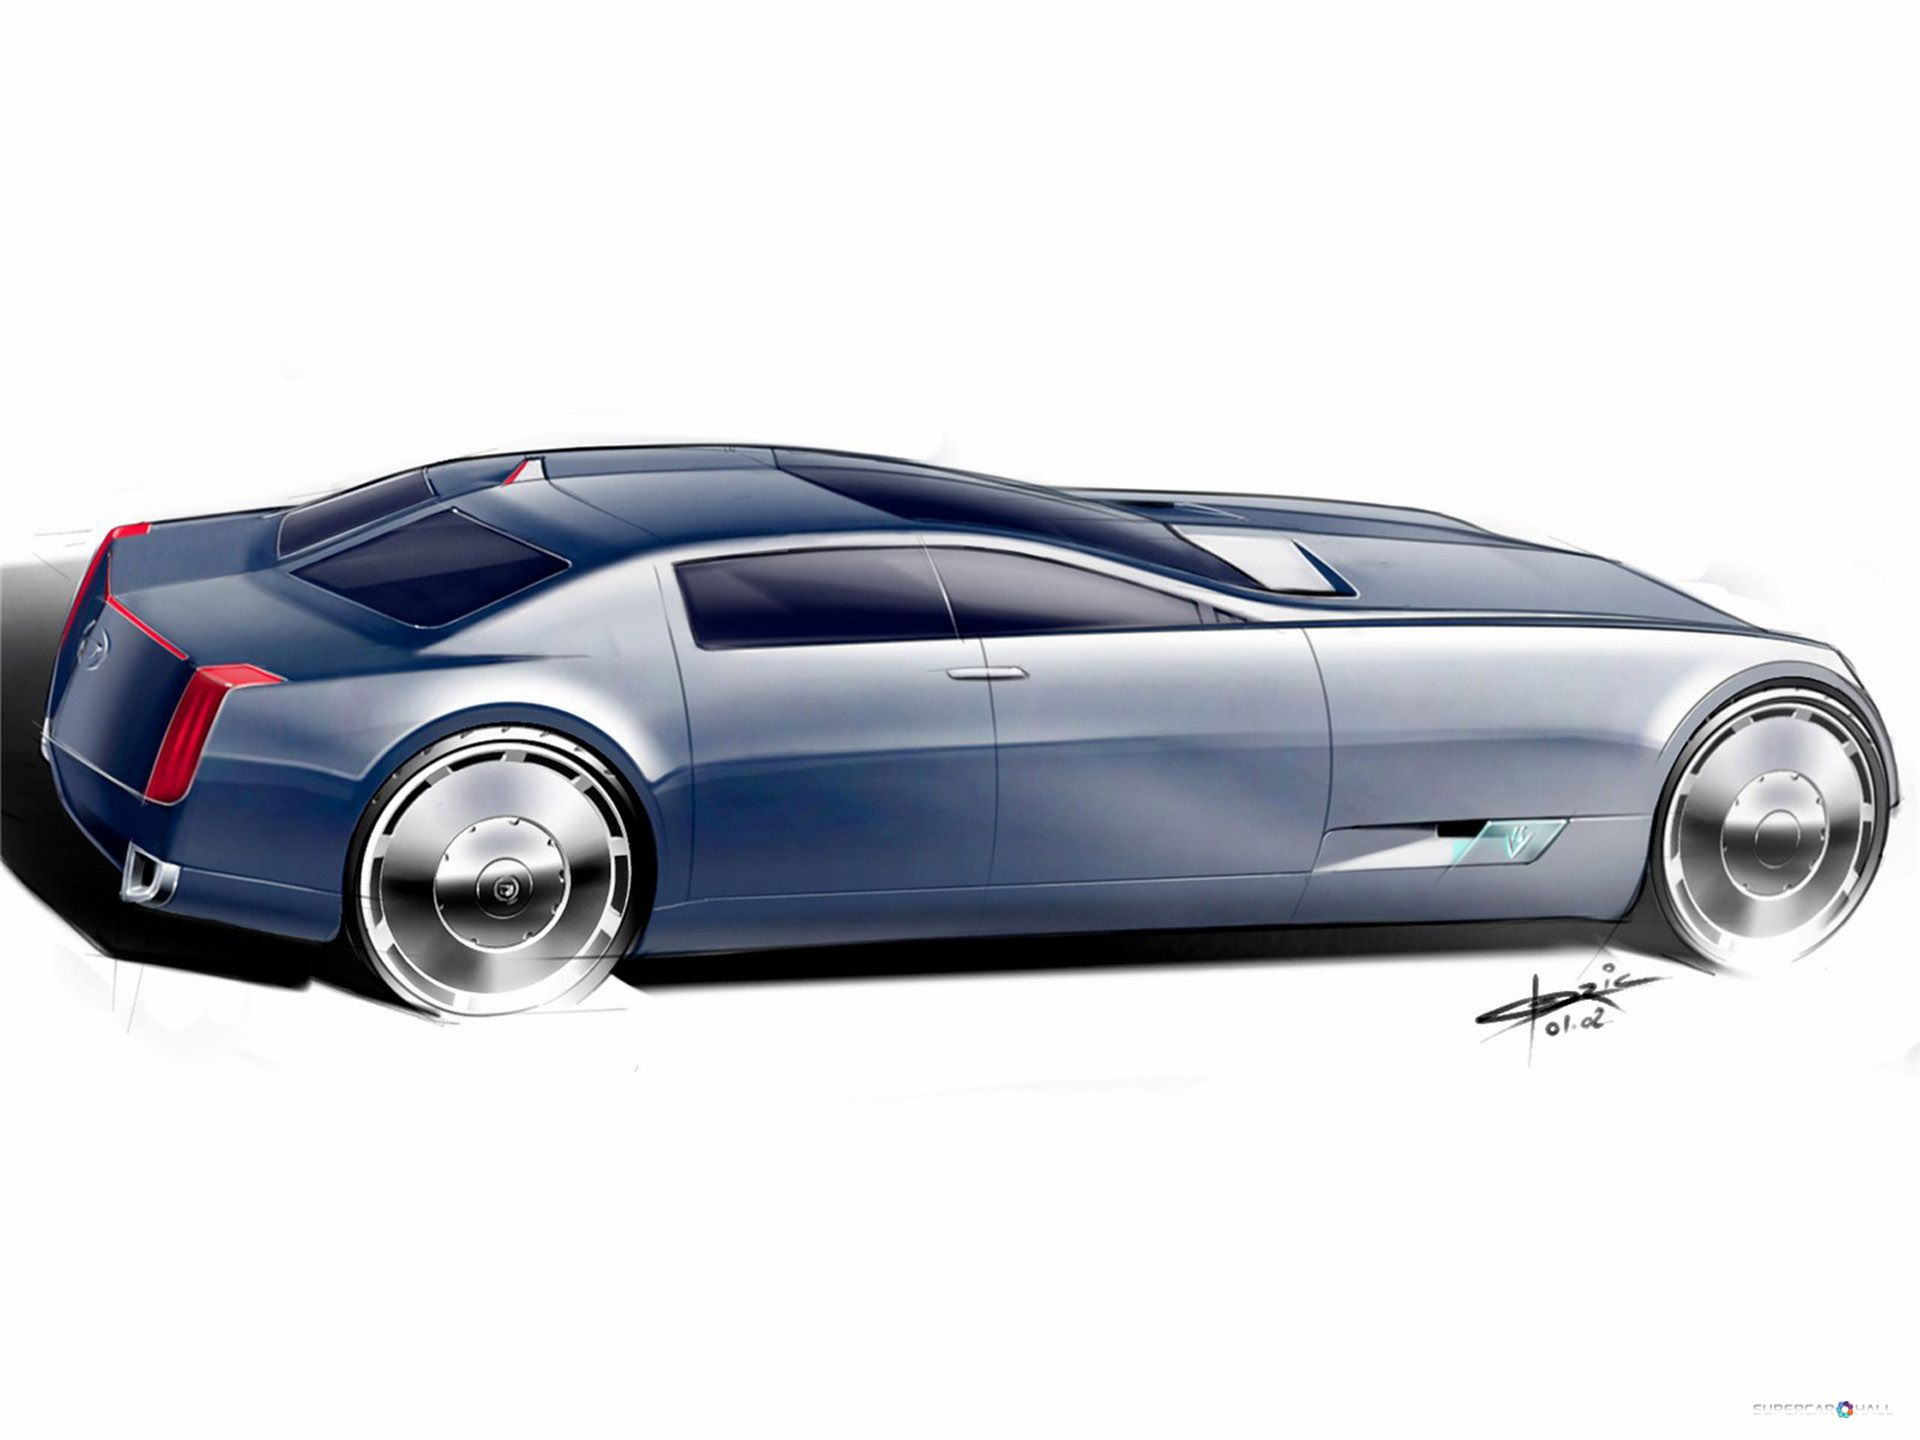 Pin By Irad On Future Car Concepts Pinterest Cars Cadillac And